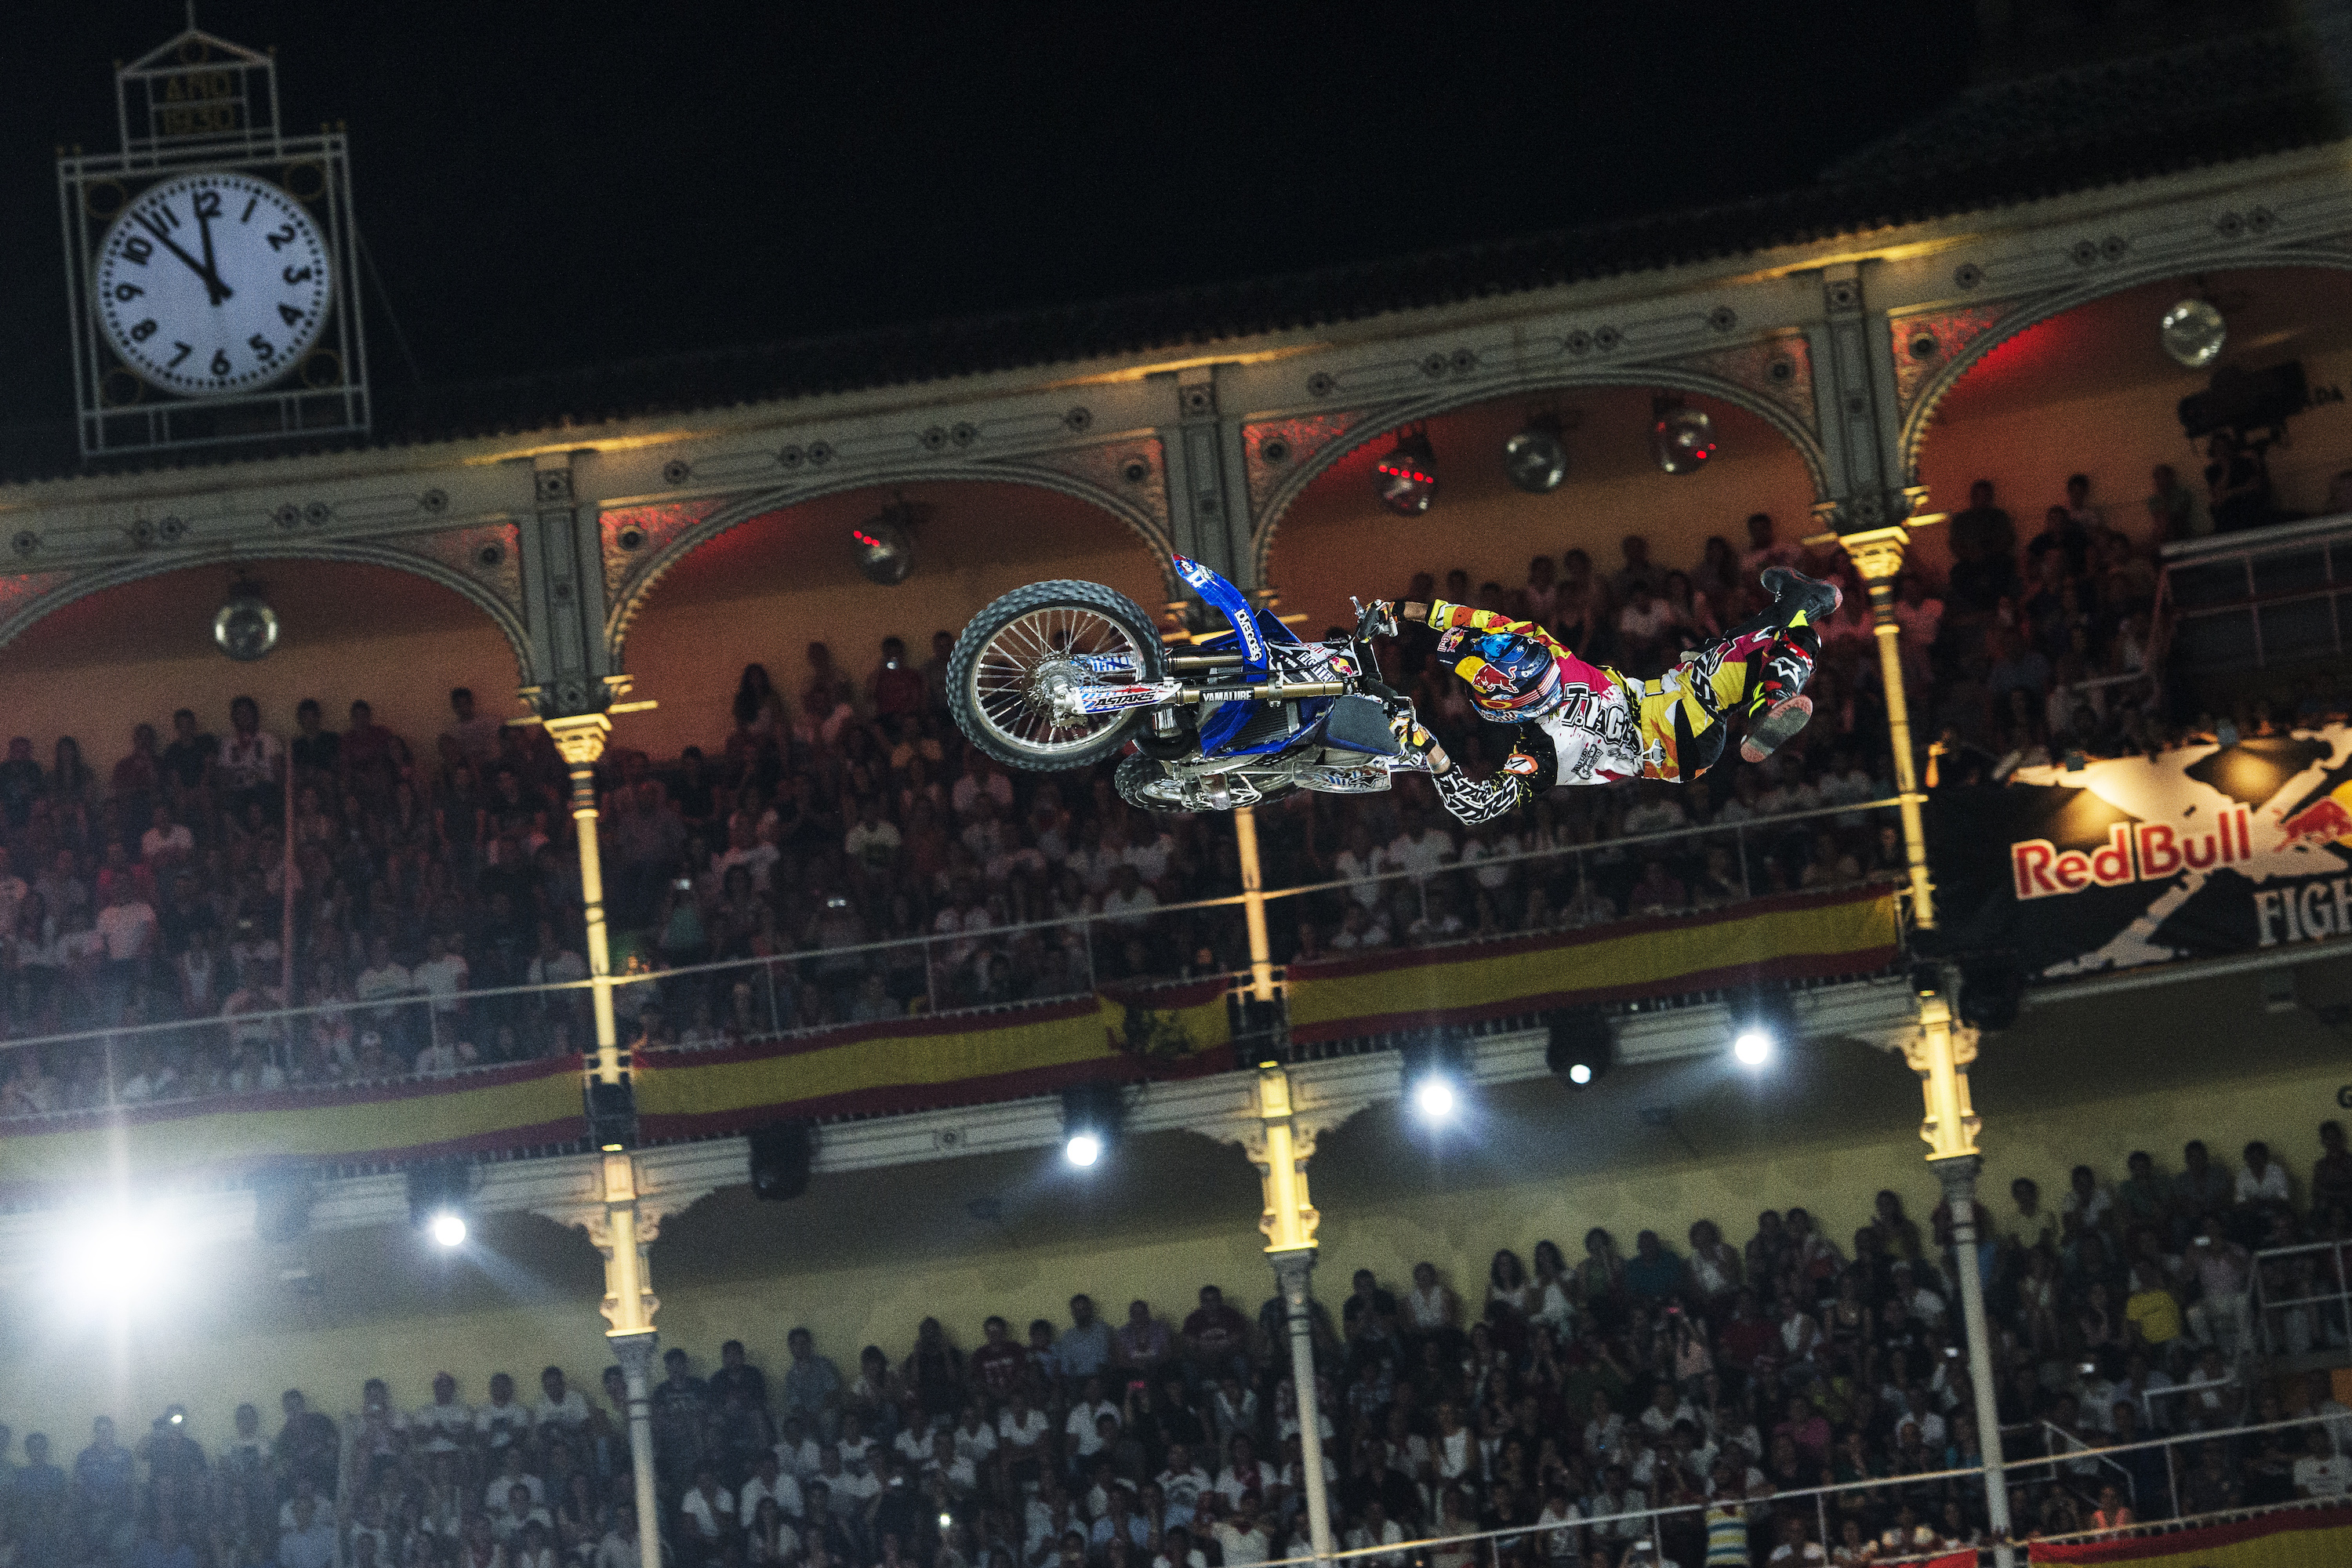 Tom Pagés a Red Bull X-Fighters